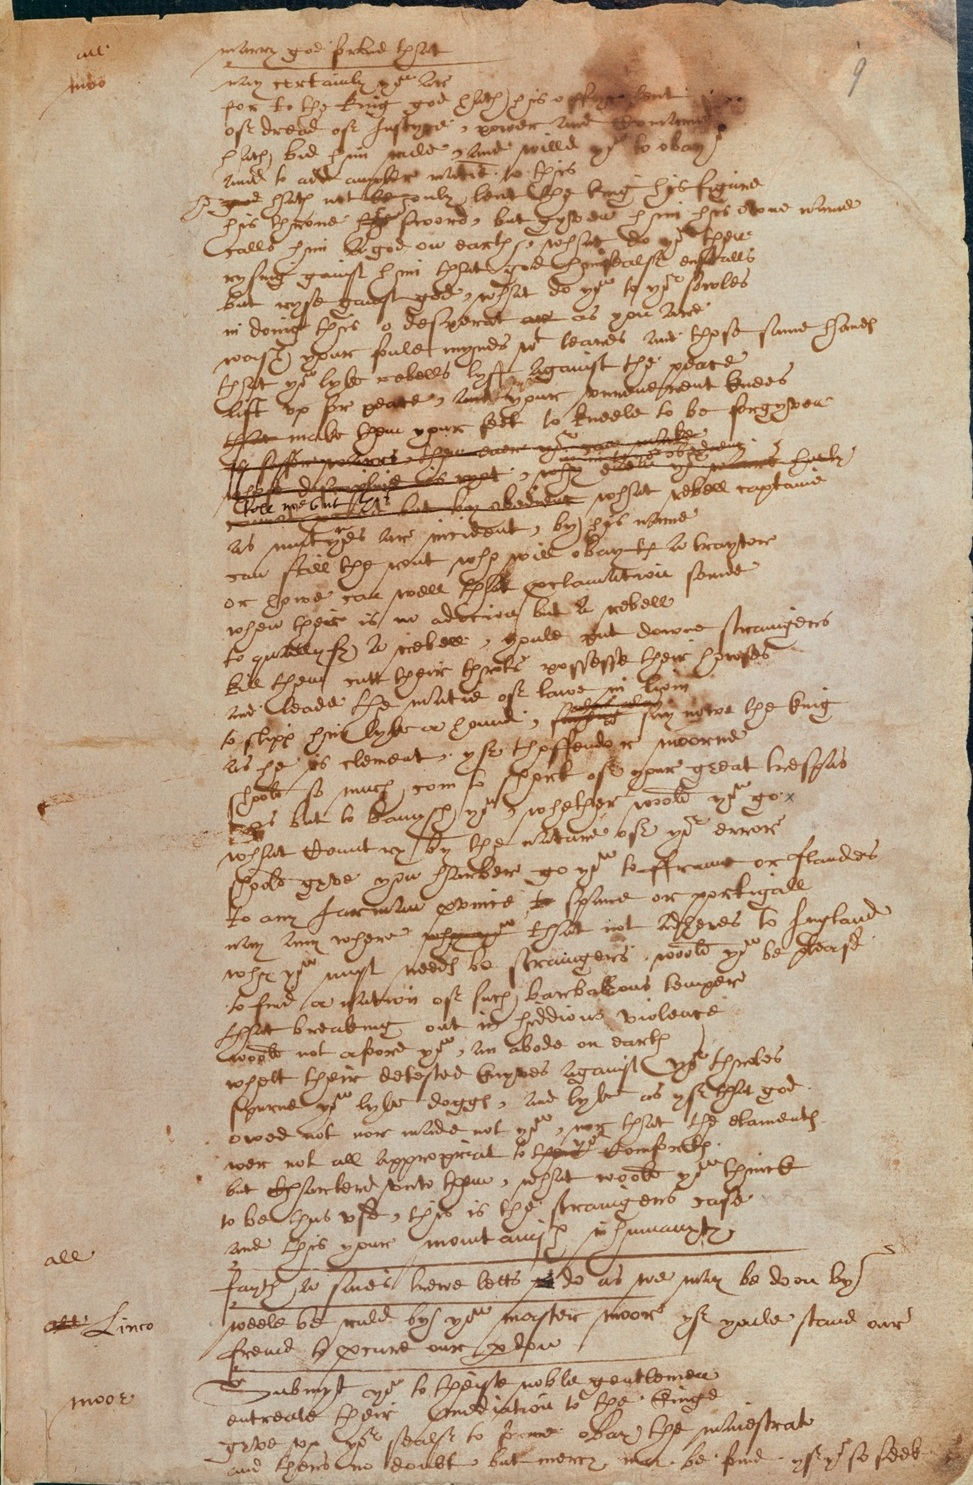 Skeptic  Insight  False Balance And The Shakespeare Authorship  A Possible Example Of Shakespeares Handwriting By Unknown Scanned From  The Original Document The Yellow Wallpaper Essay Topics also Buy Essays Papers  Interesting Persuasive Essay Topics For High School Students